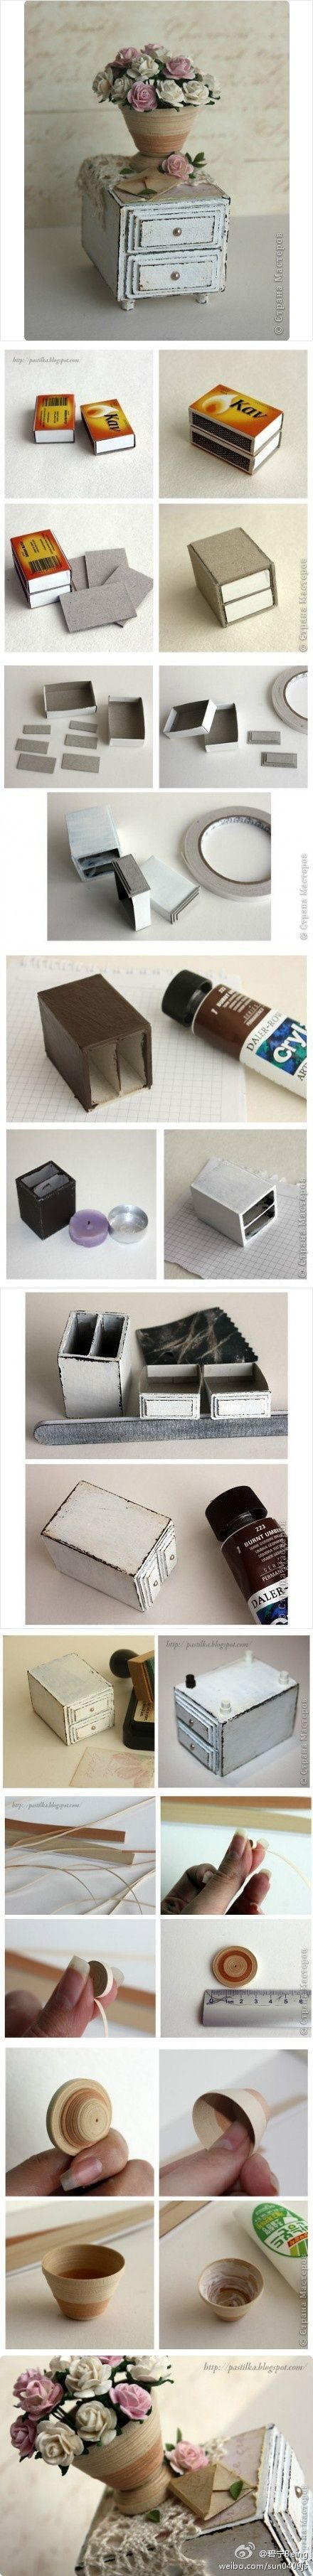 Miniatures - how to: bedside table